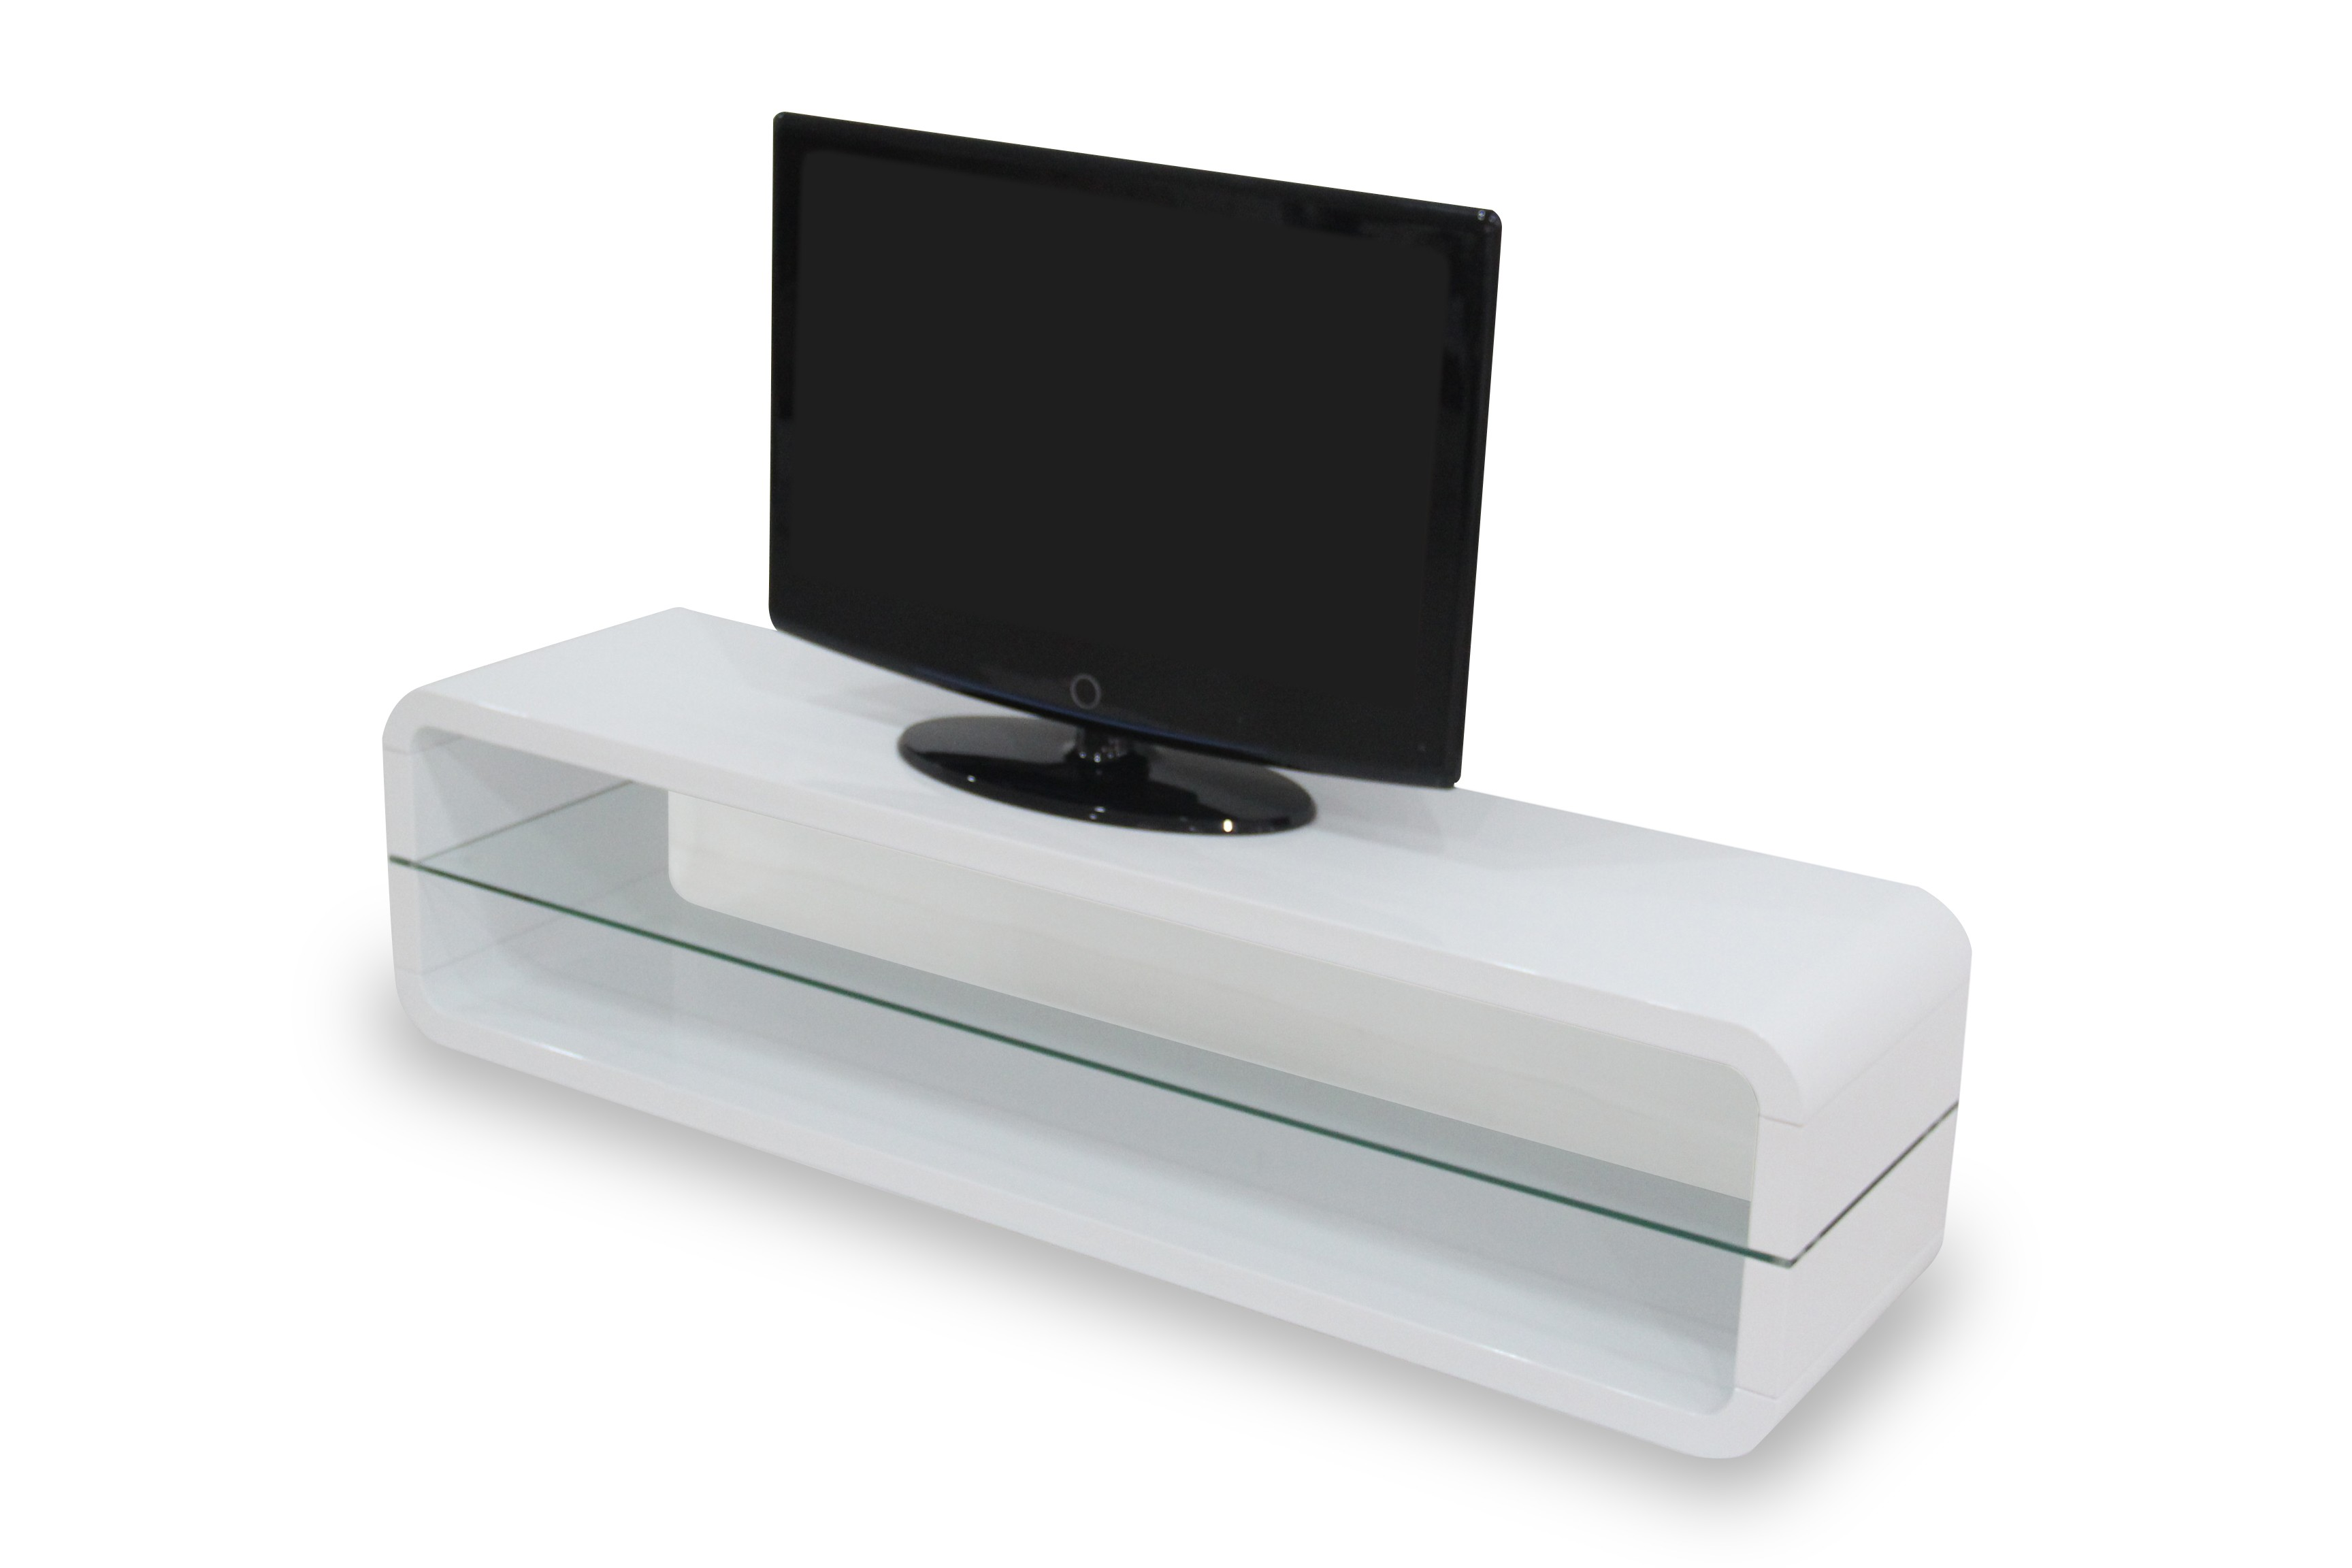 Table de tele en verre 20 id es de d coration int rieure for Table de tele